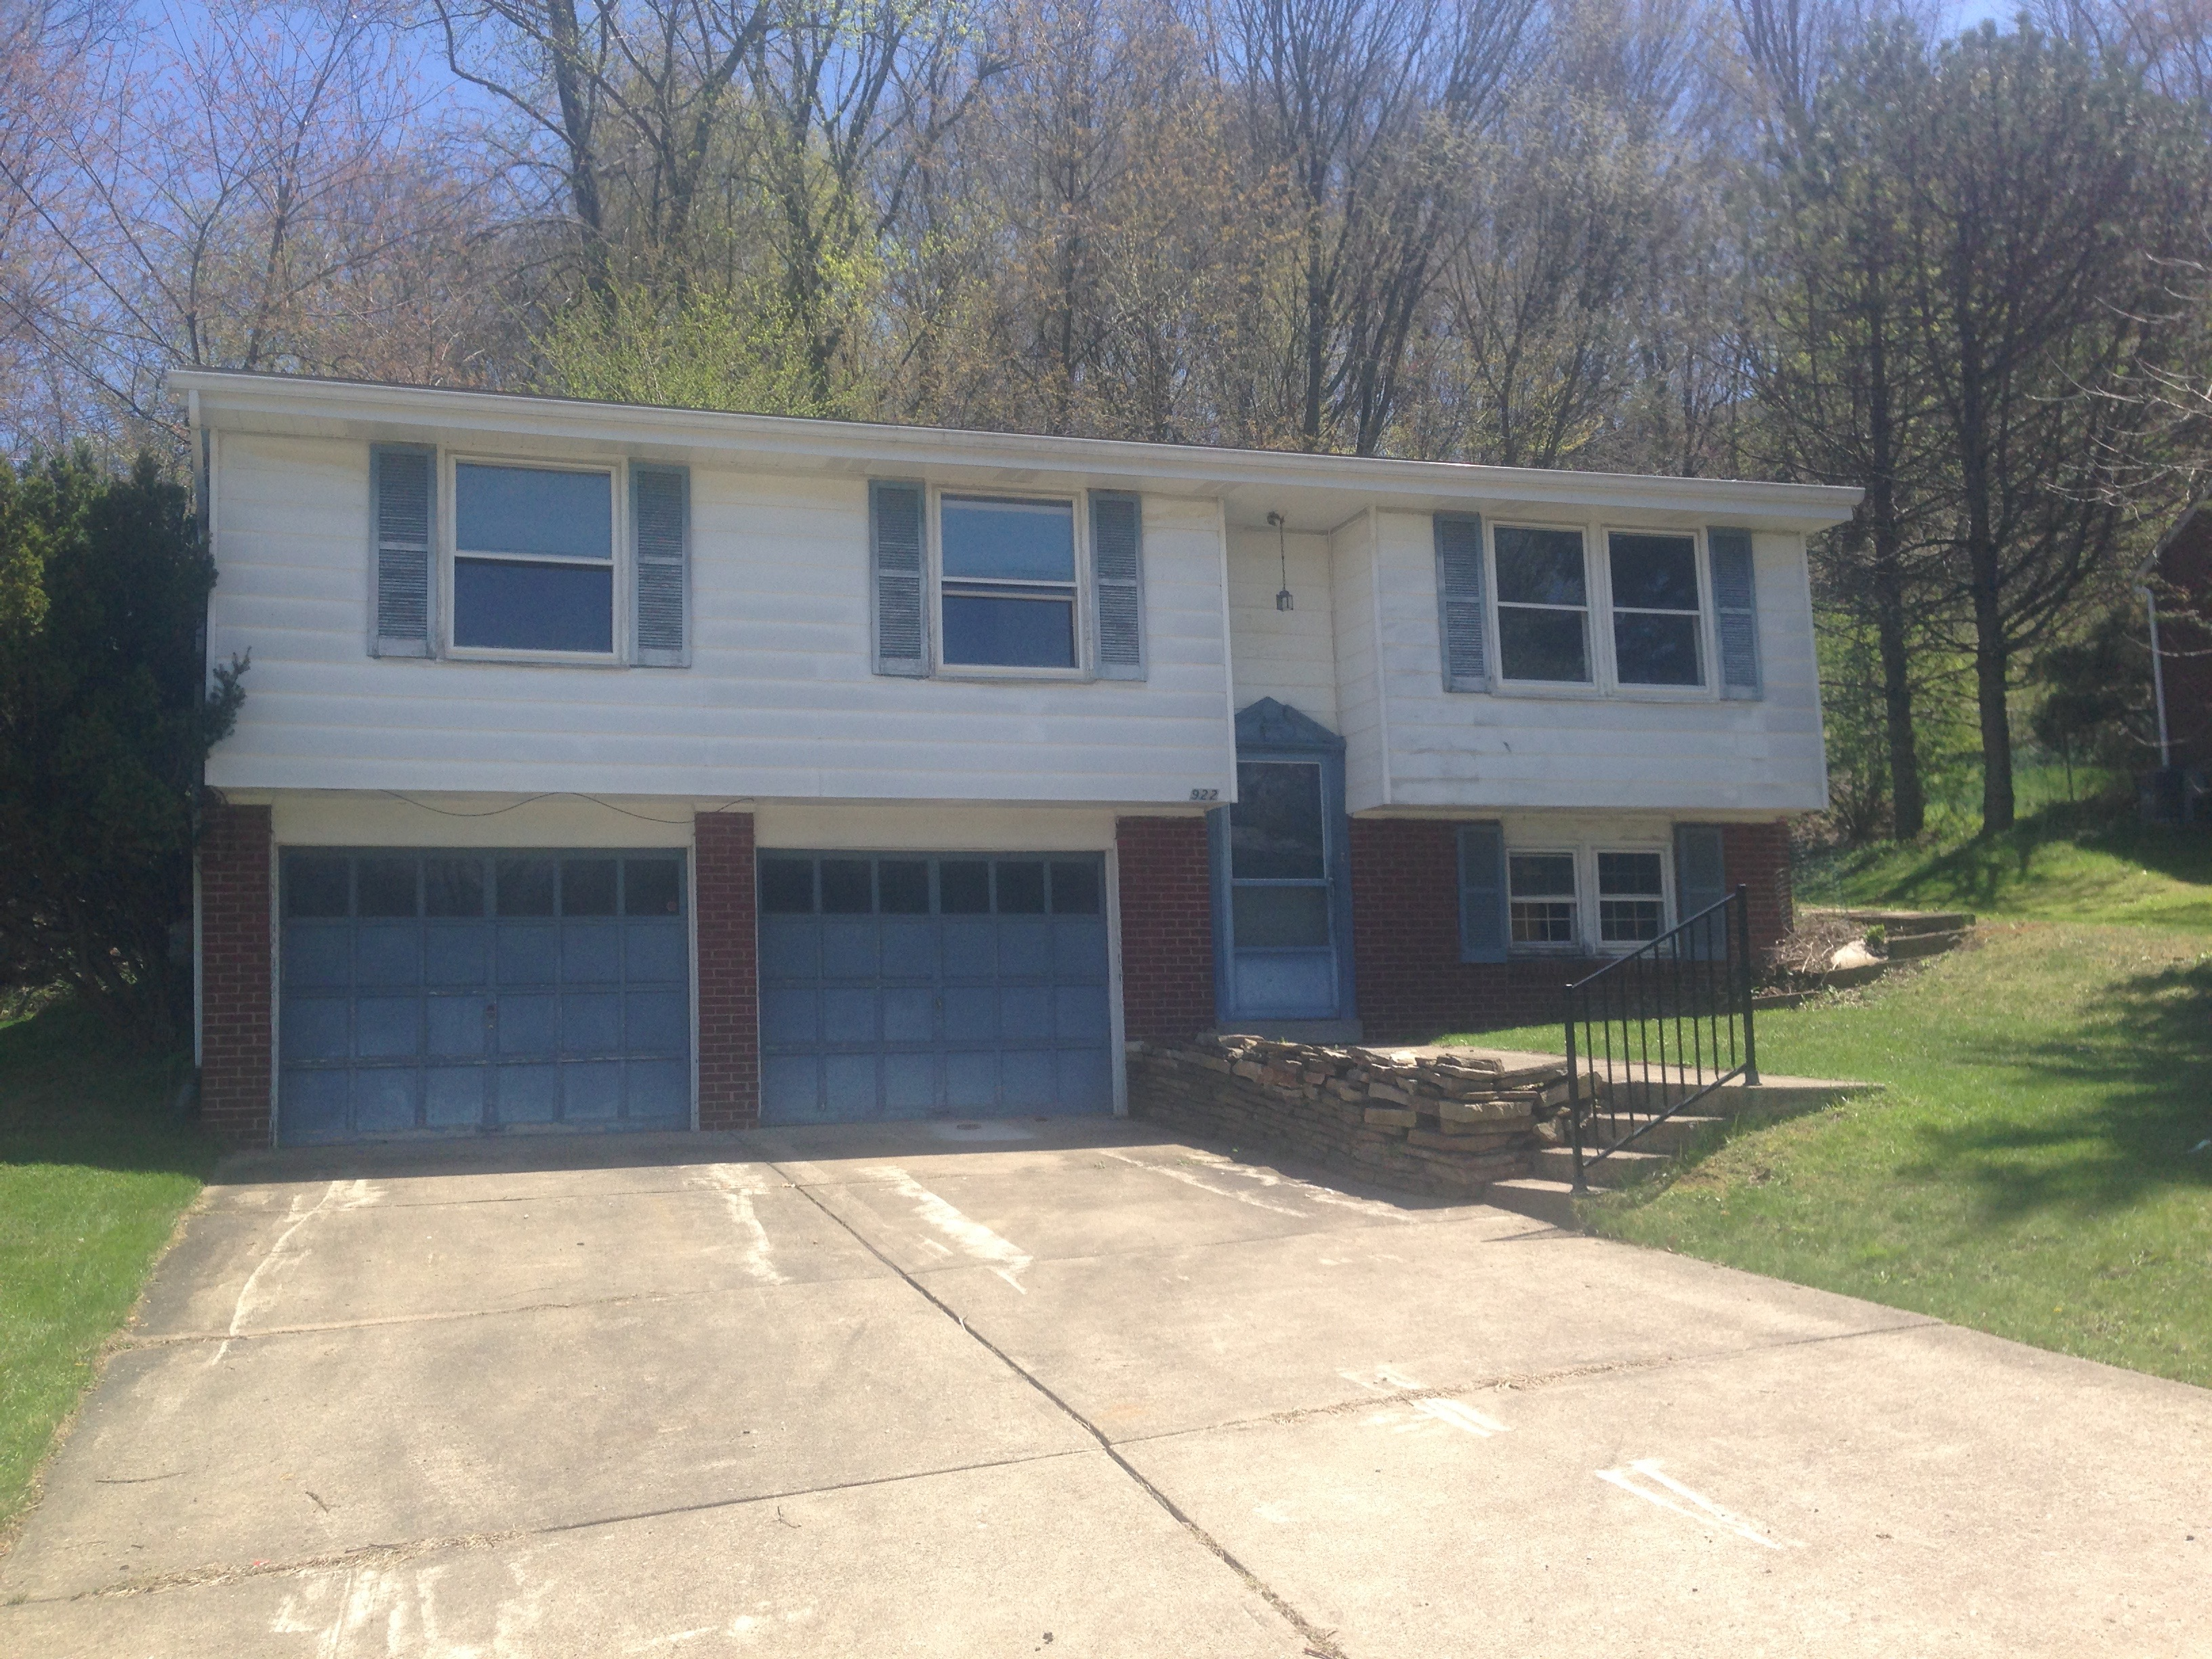 Under Contract | Penn Hills | $45,000